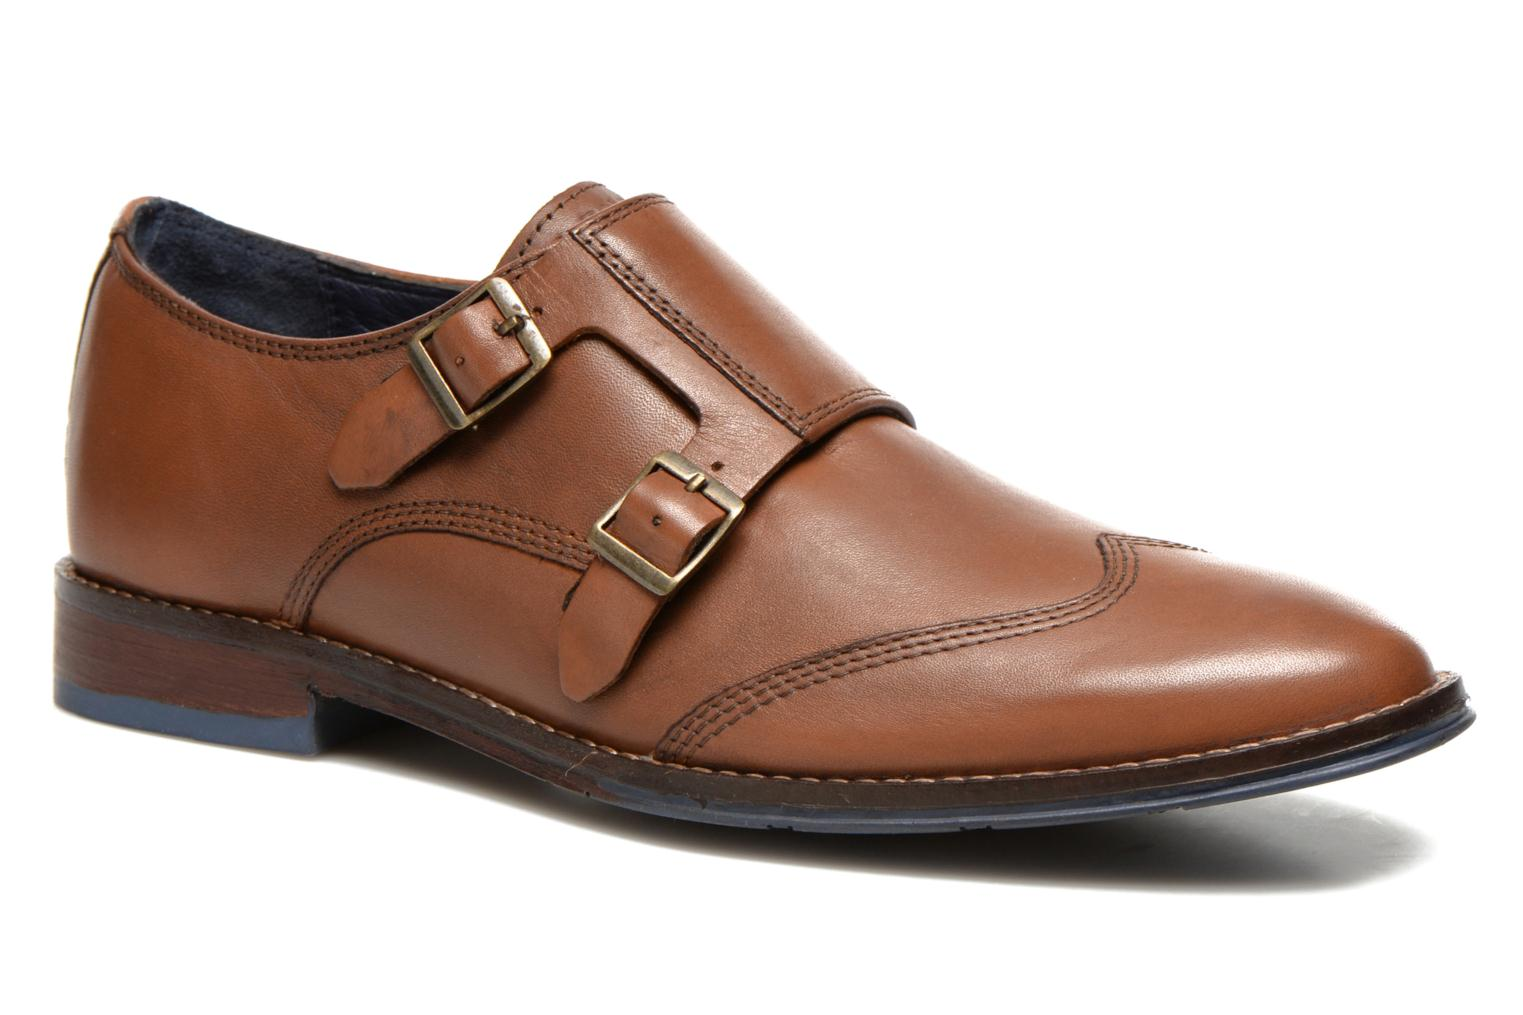 Mocassins Monk Style by Hush Puppies